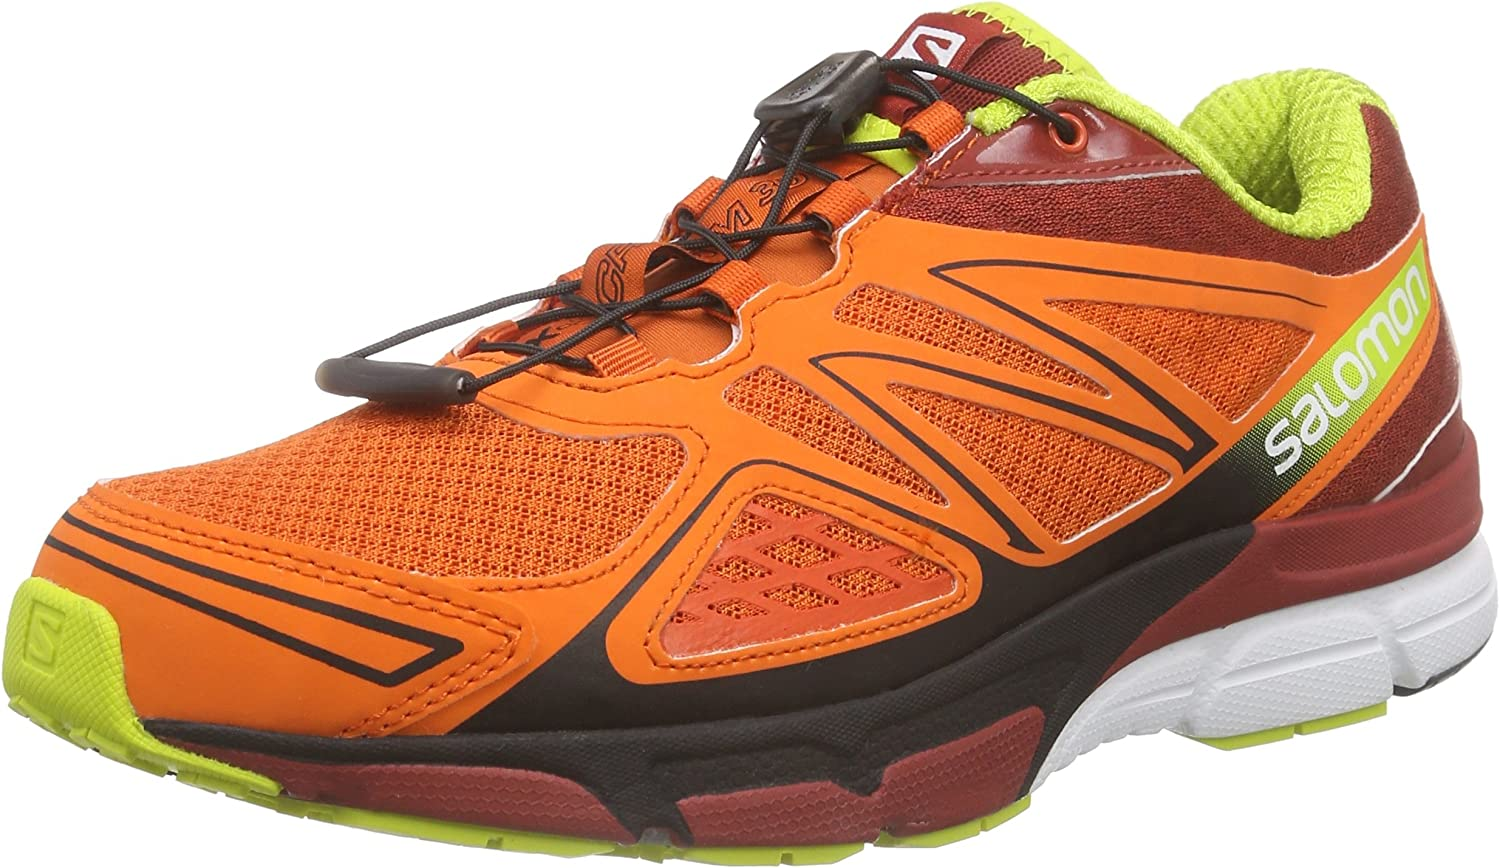 SalomonX-Scream 3D - Zapatillas de Running Hombre, Color Rojo, Talla 48: Amazon.es: Zapatos y complementos